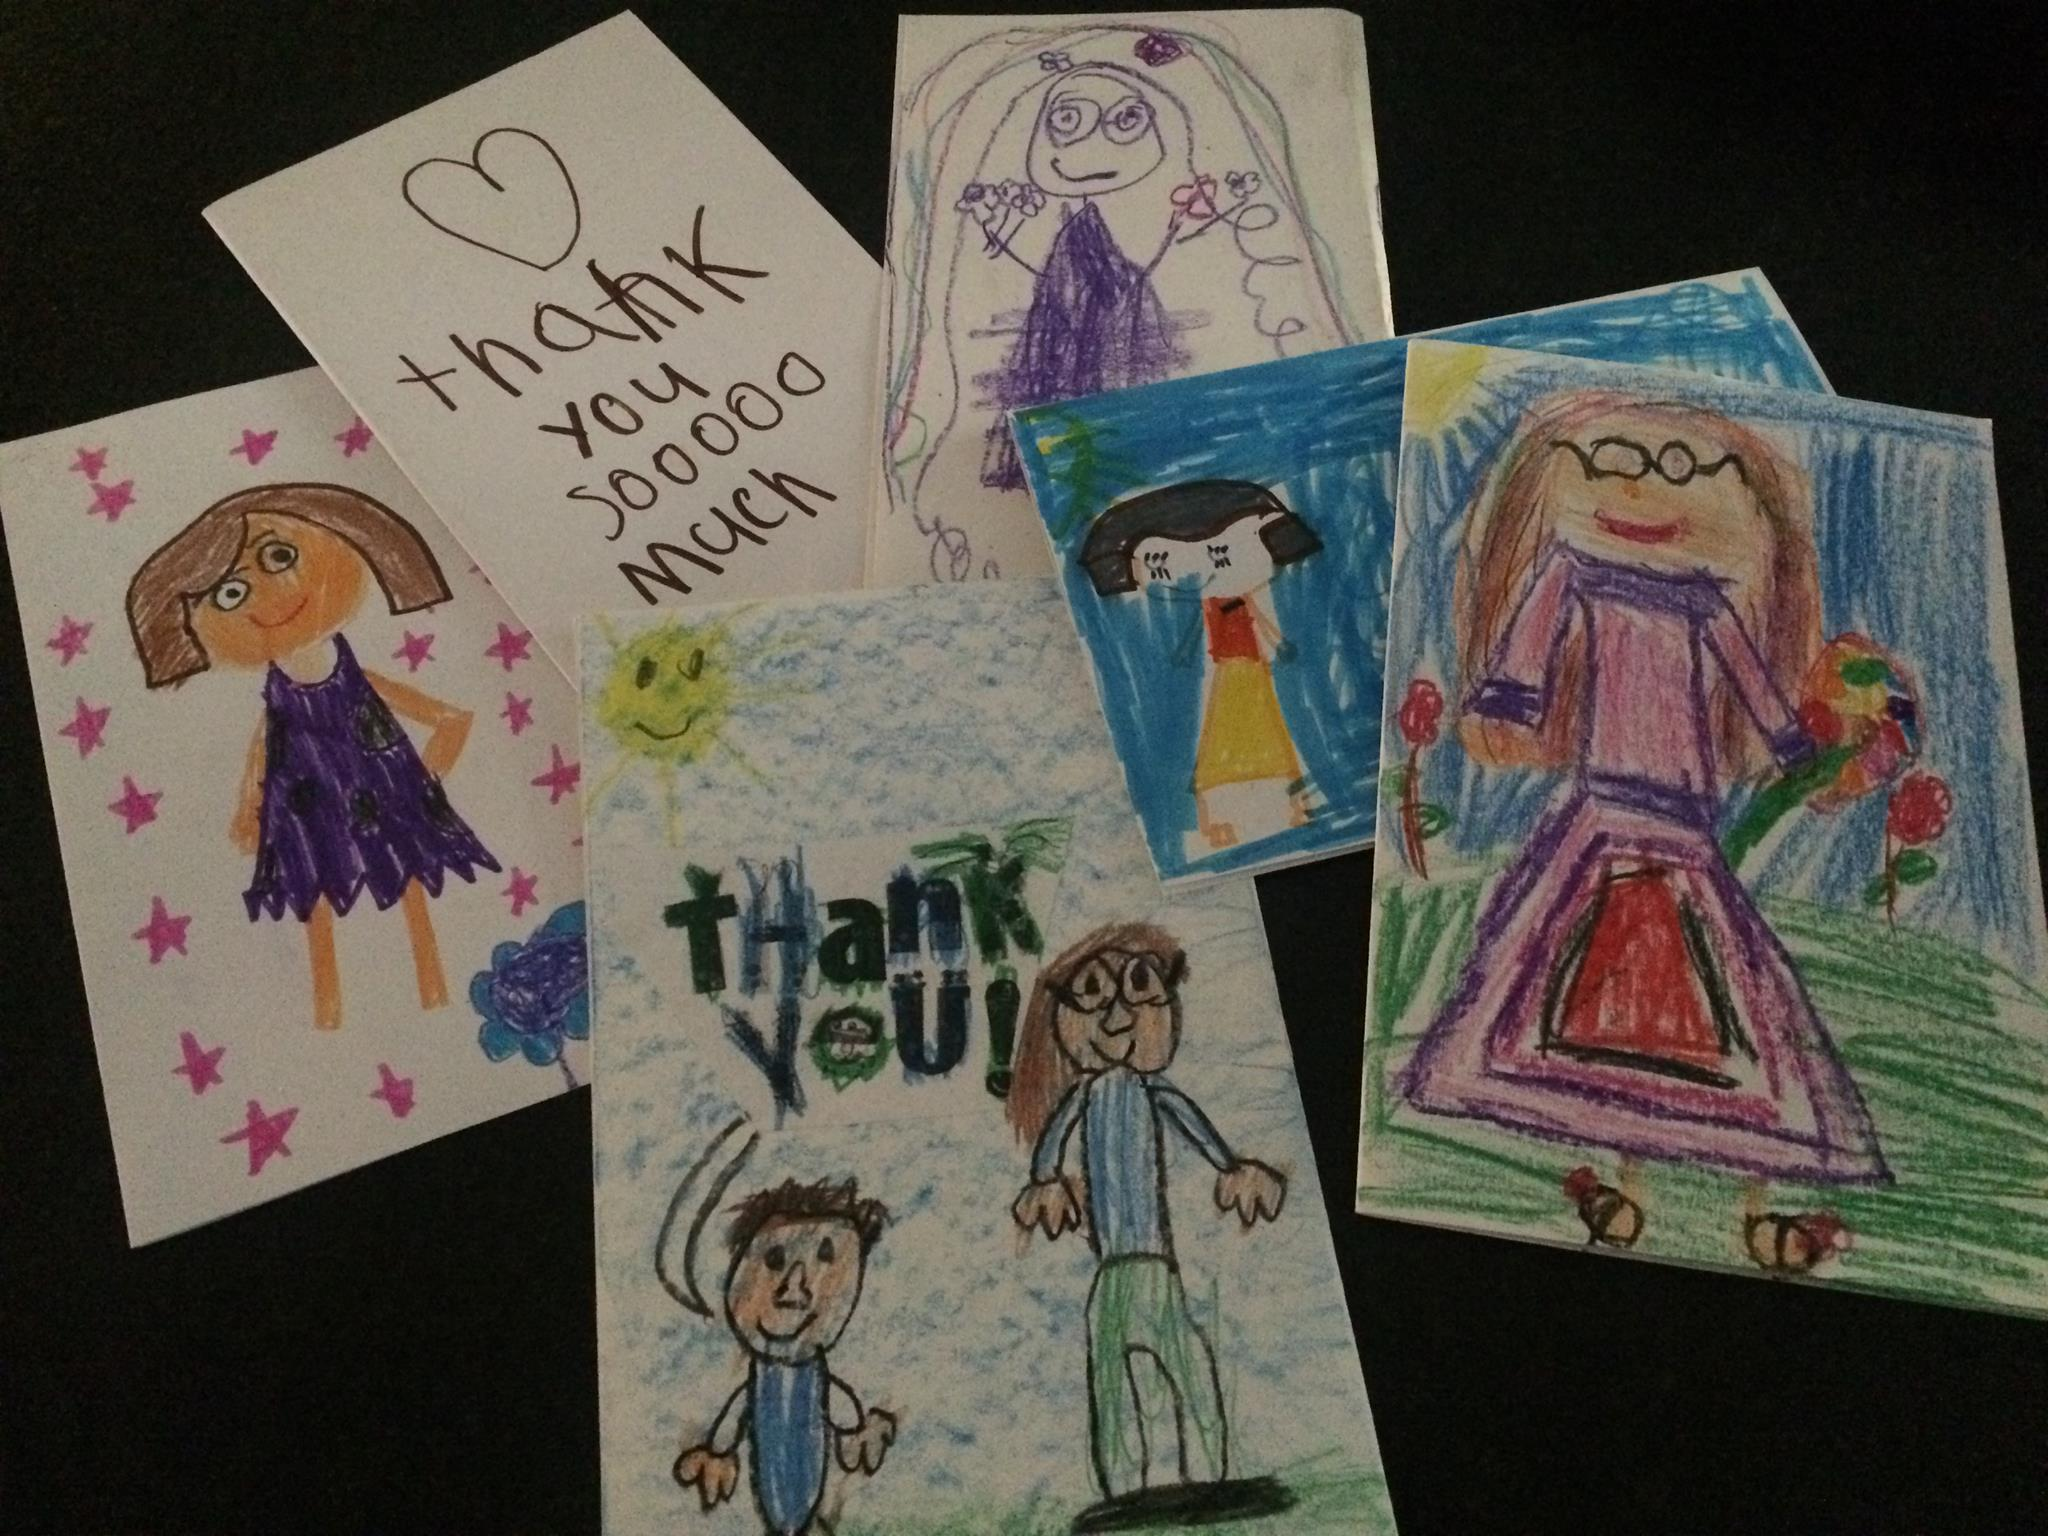 Heartfelt thank you notes from the children at West Rock Authors Academy in New Haven, Connecticut